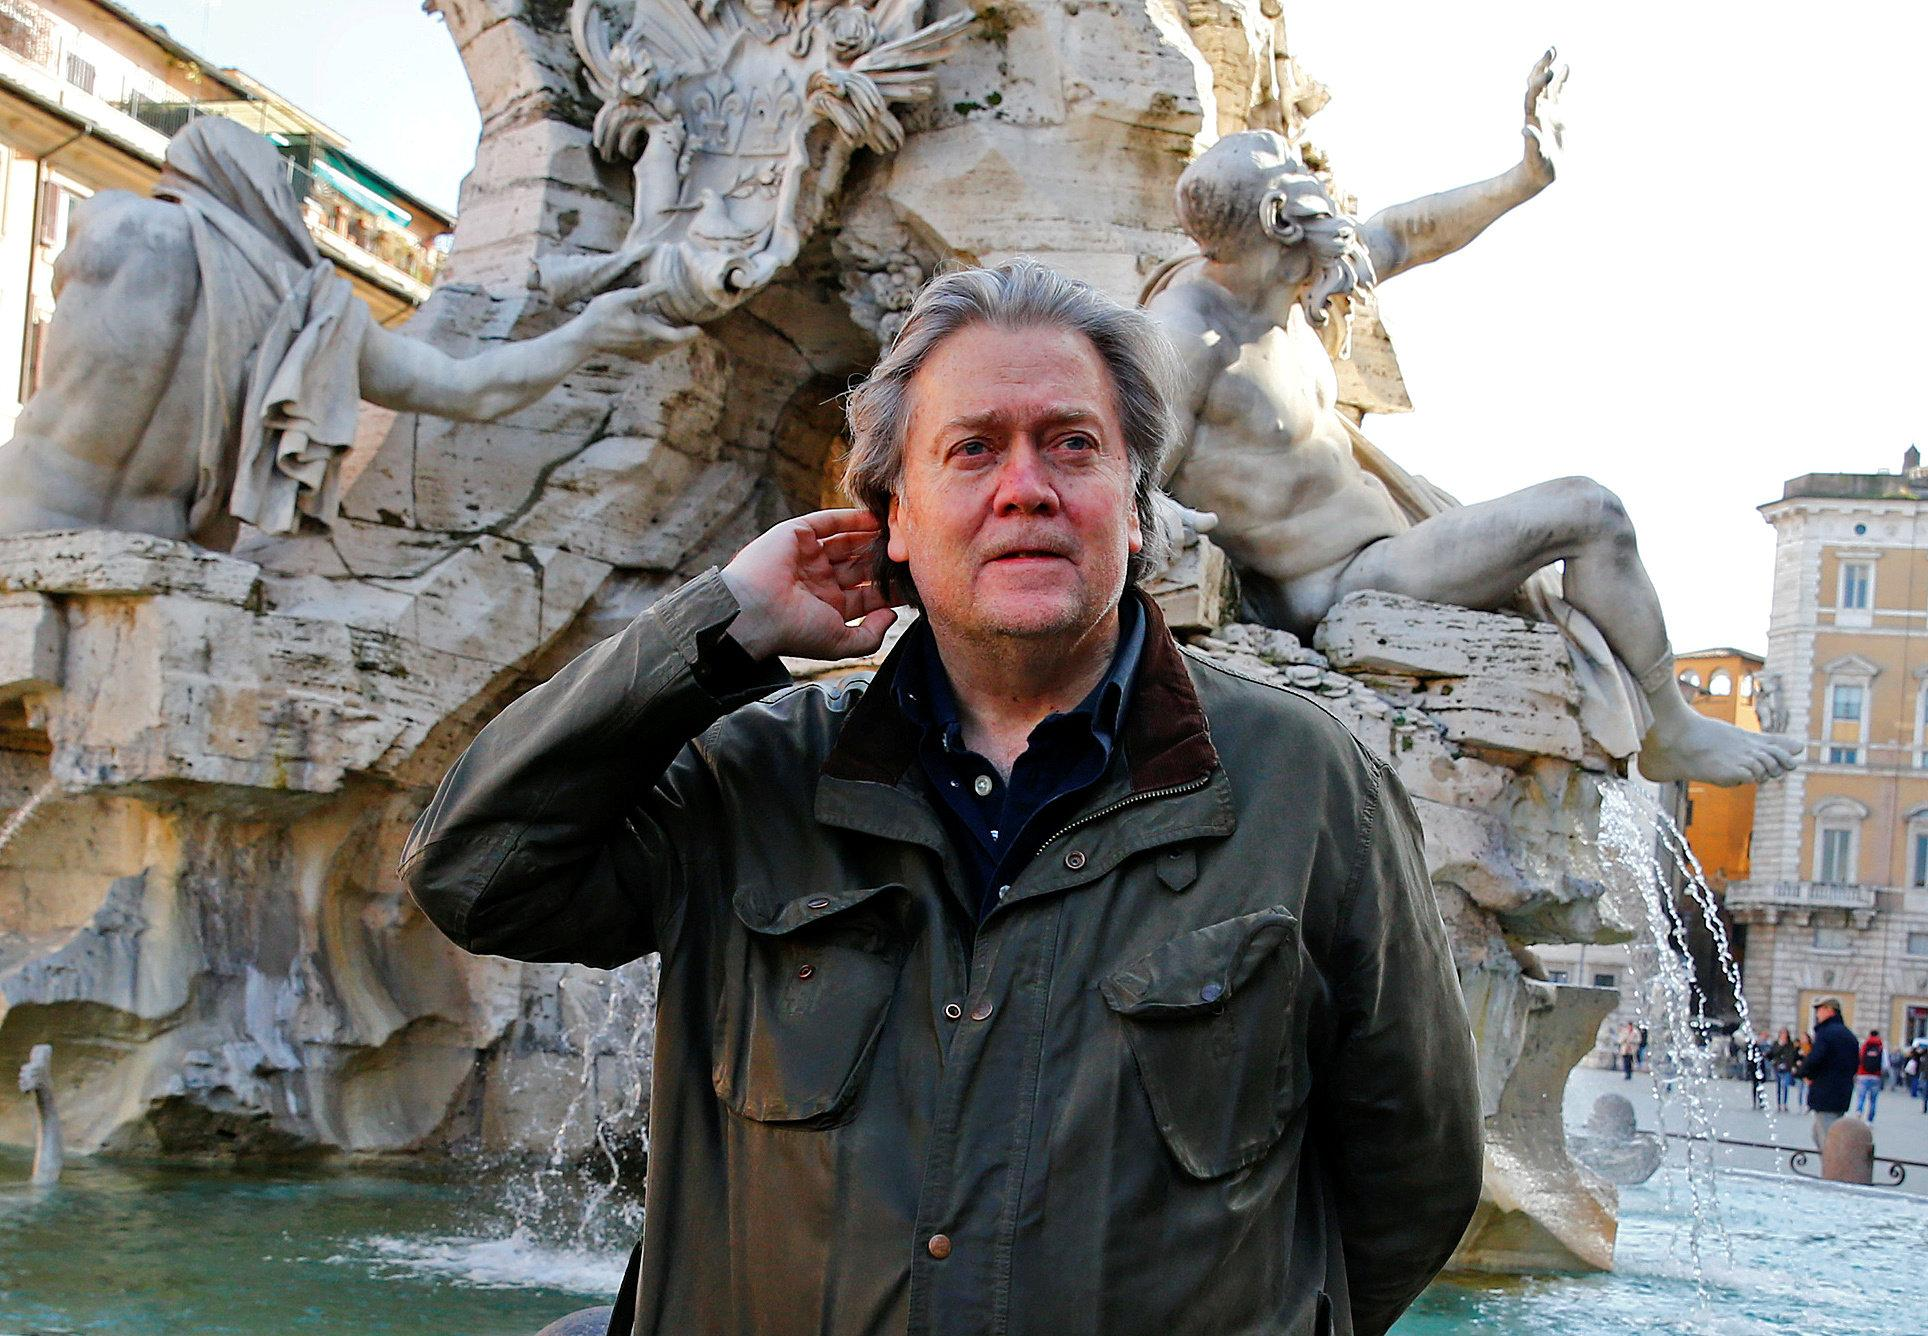 U.S. President Donald Trump's former chief strategist Steve Bannon poses in Piazza Navona in Rome, Italy March 2, 2018. Tony Gentile